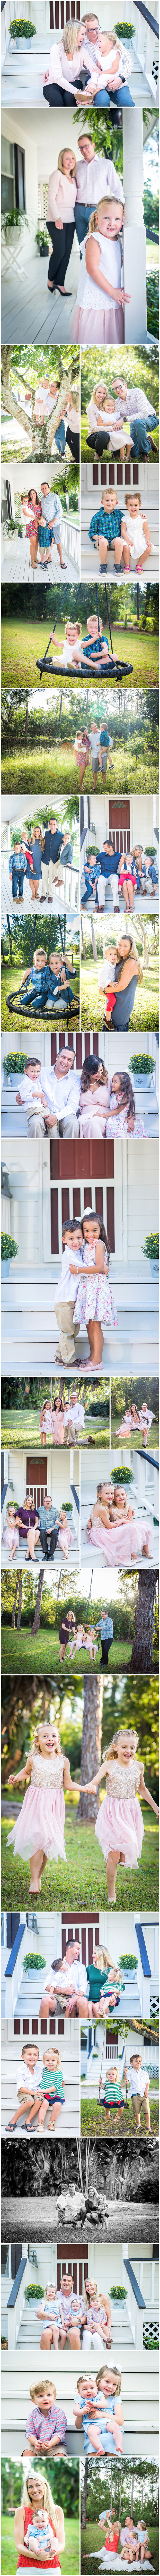 Country charm and joyful families during family photo sessions at Jupiter Farms, Florida